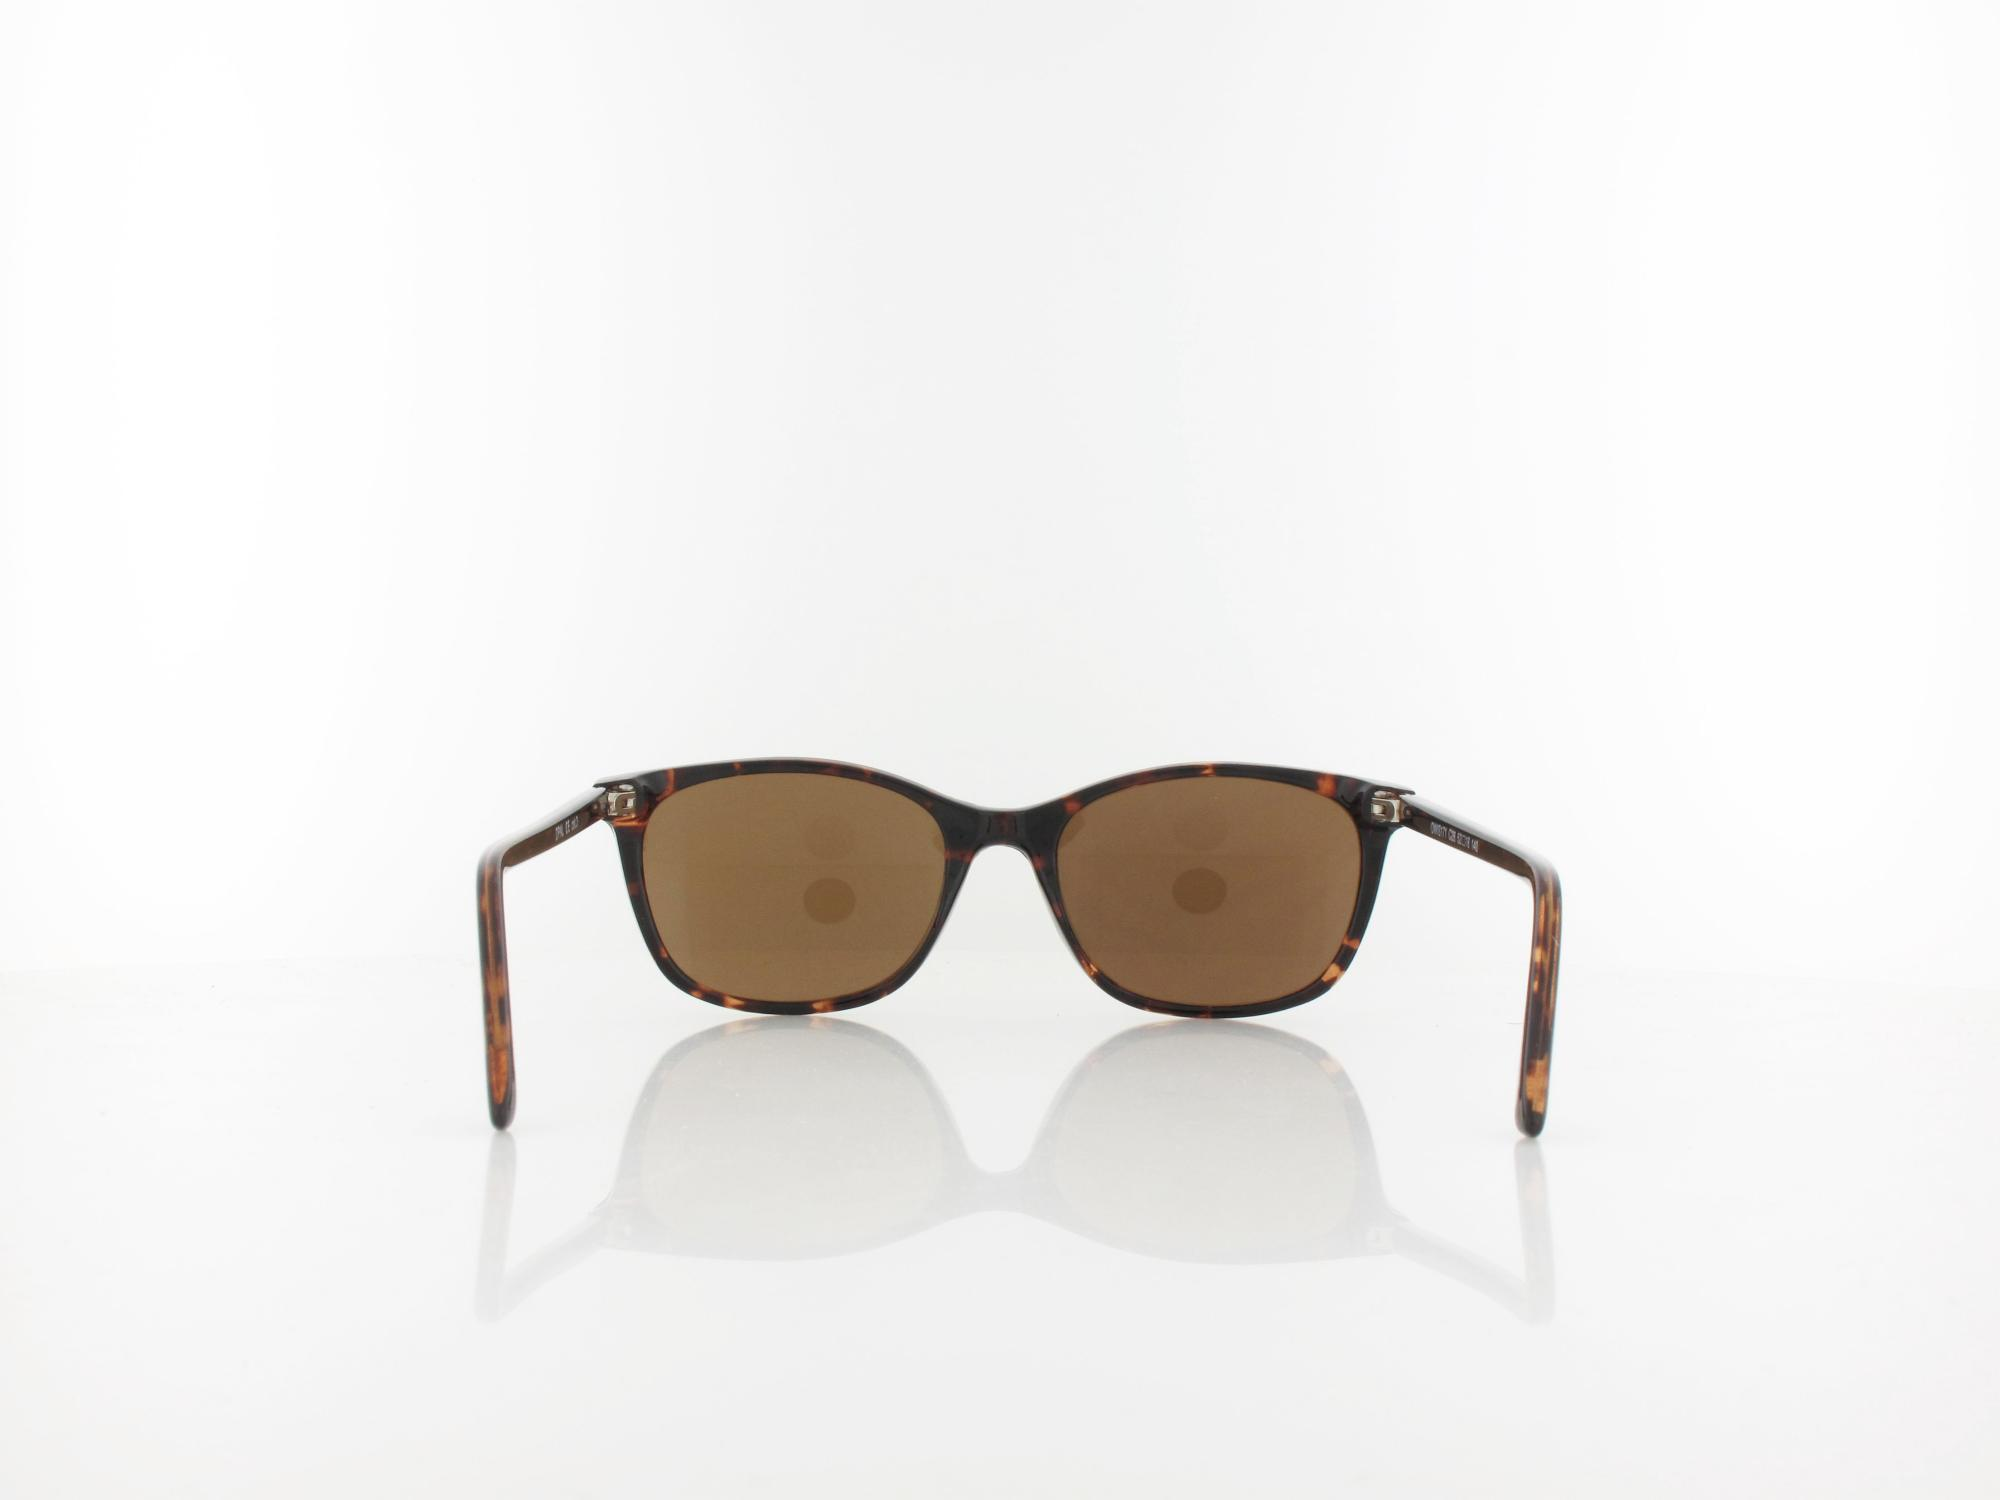 Brilando | OW IS171 C28 52 | dark tortoise / brown